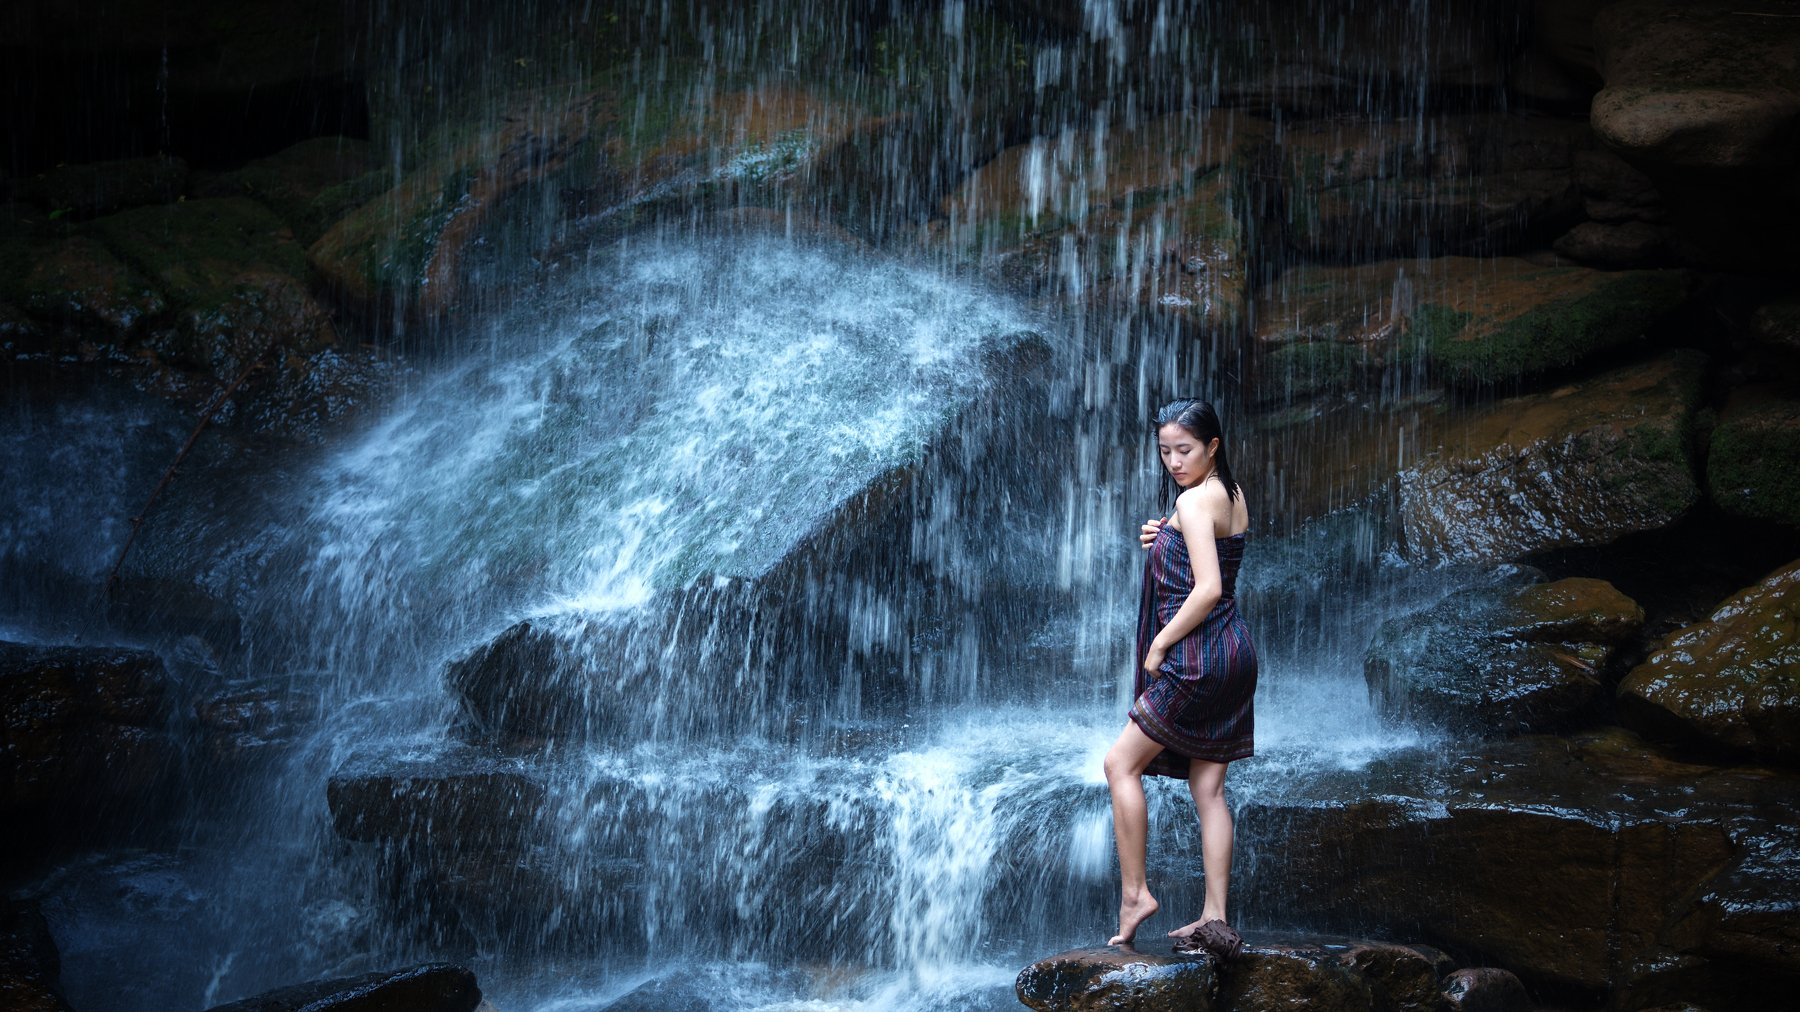 women,cool,portrait,laos,thai,beauty,waterfall,asia,, SUTIPORN SOMNAM